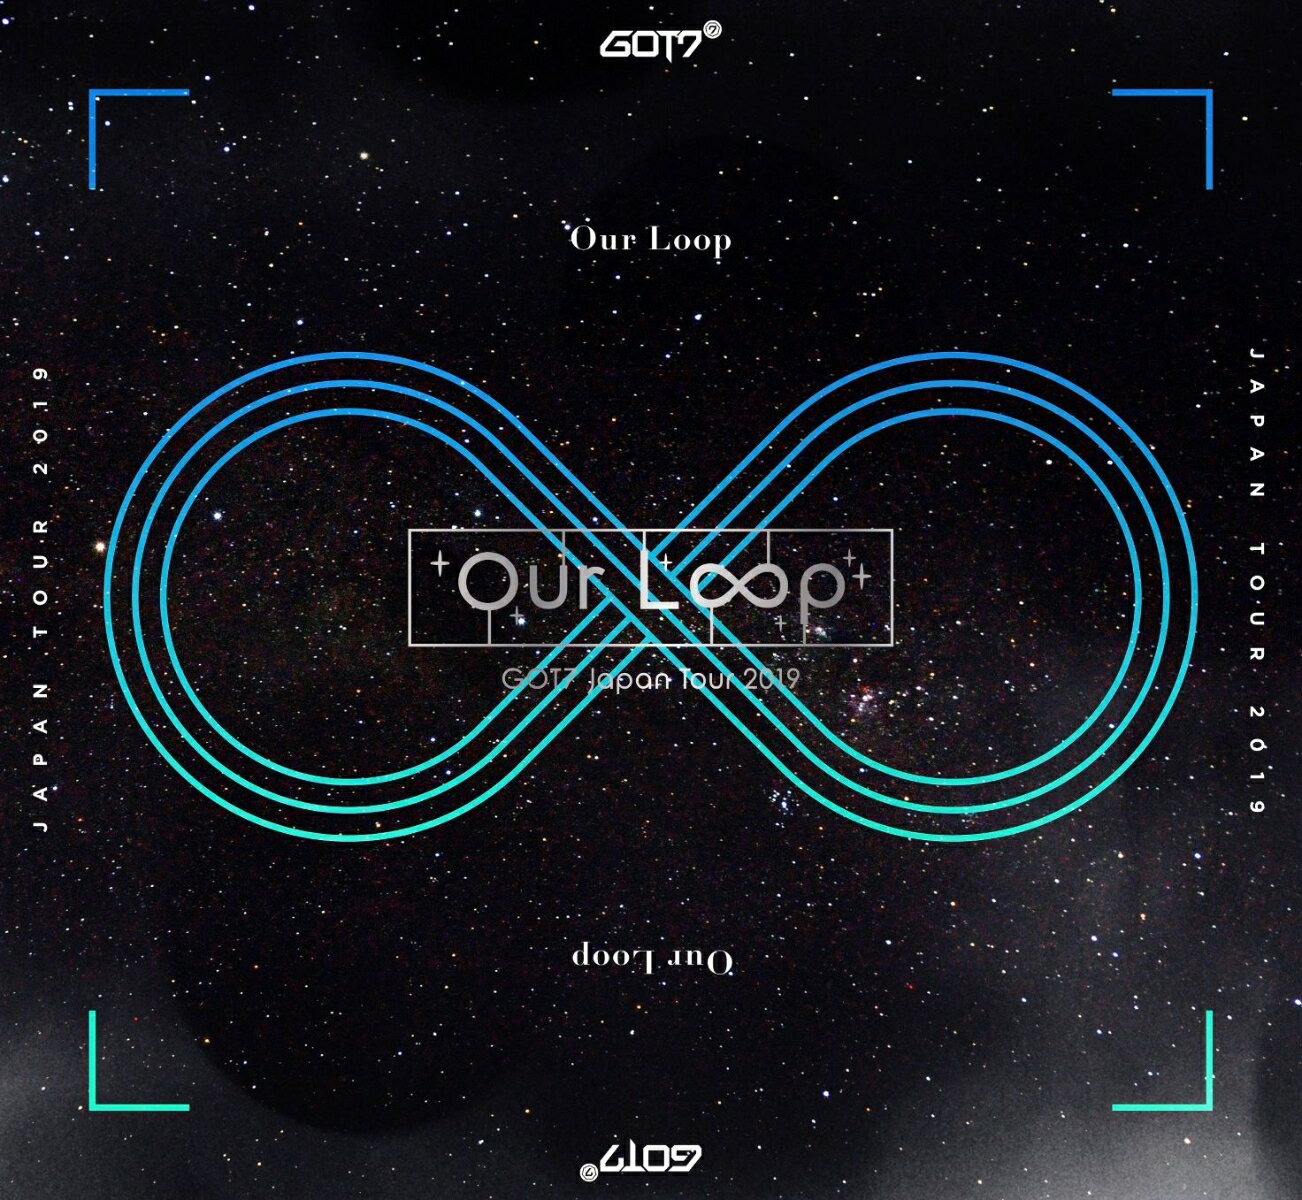 "GOT7 Japan Tour 2019 ""Our Loop"" 完全生産限定盤【Blu-ray】"